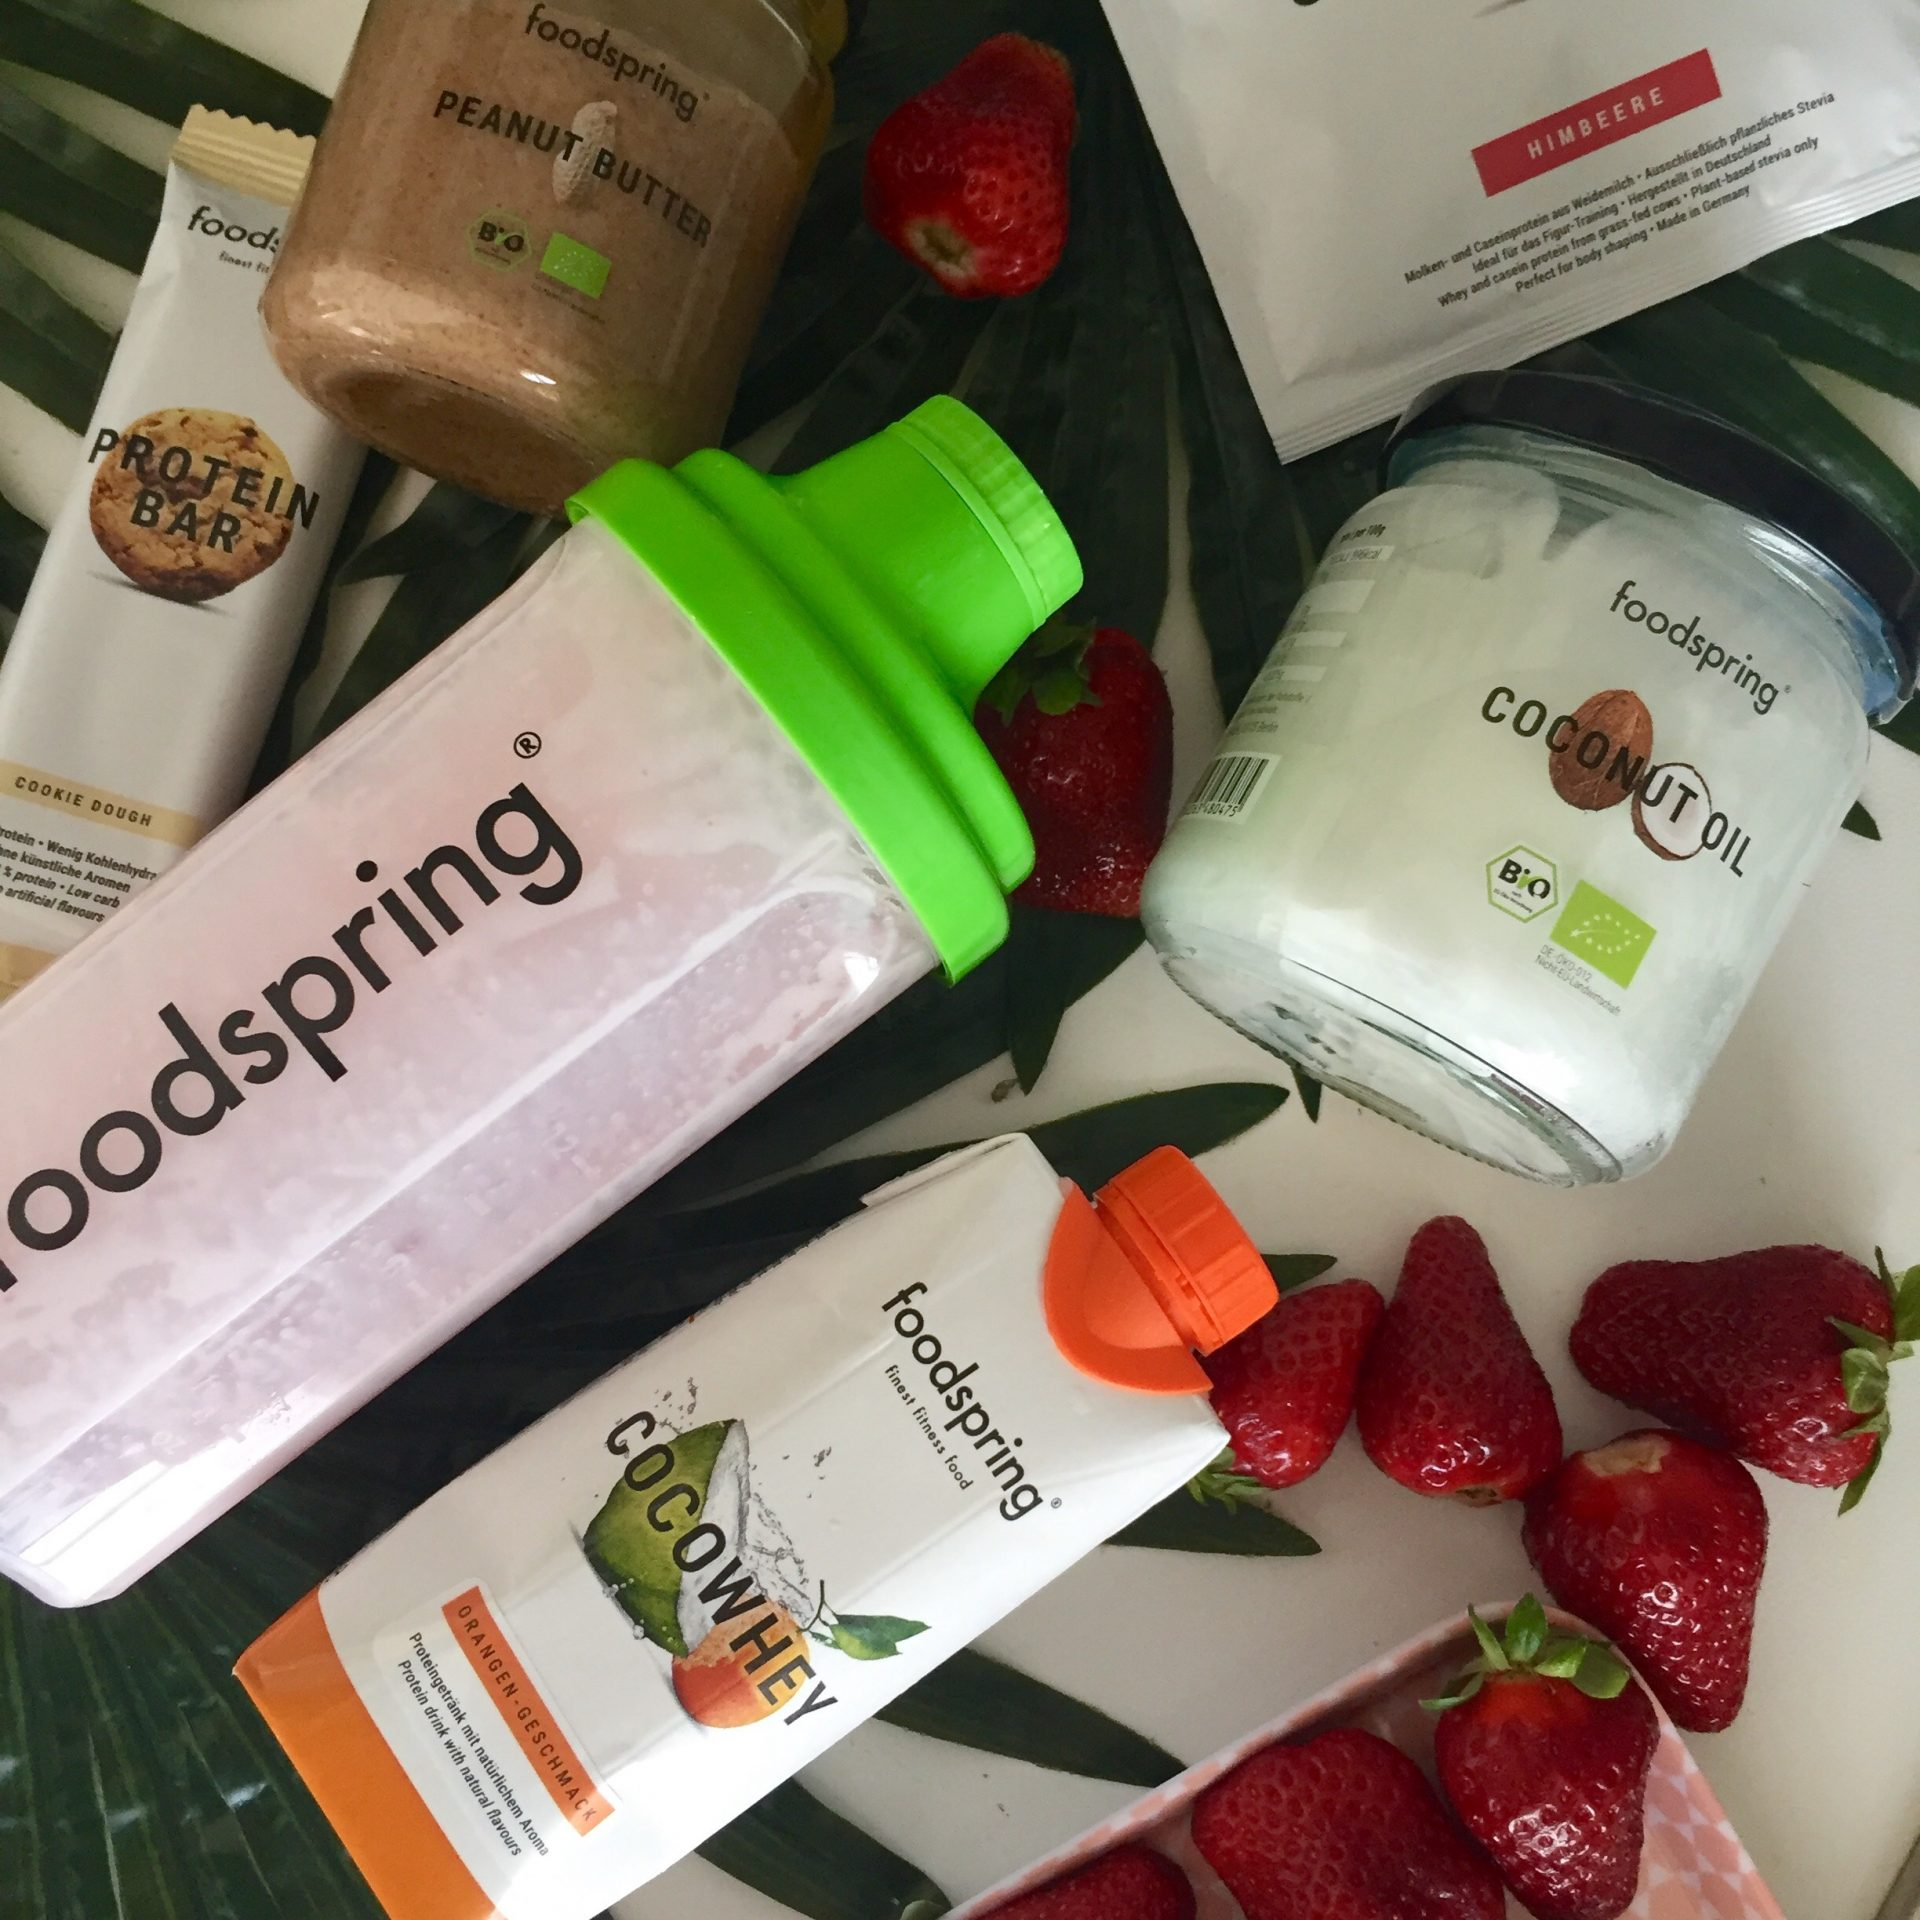 FOODSPRING - SALUTE & BENESSERE